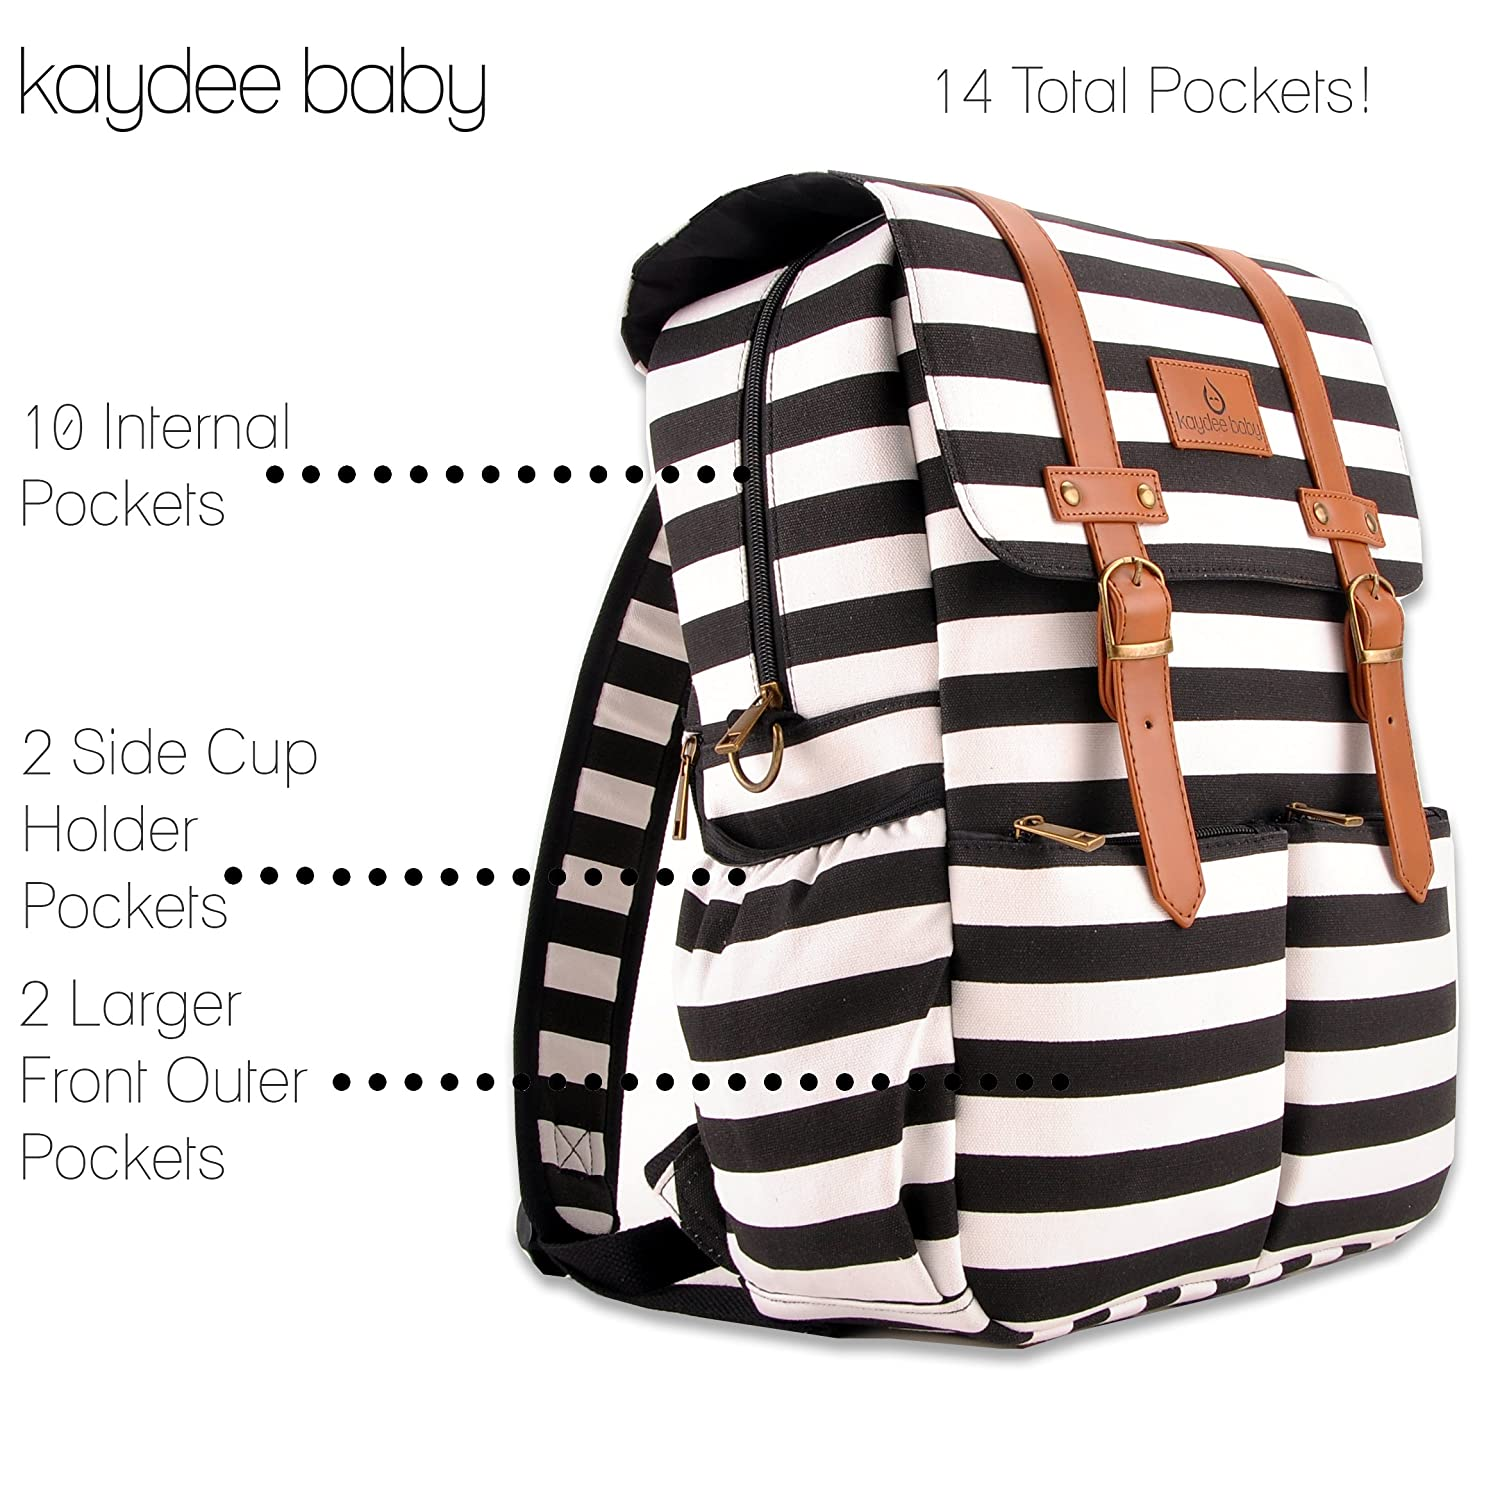 /… Kaydee Baby Unisex Canvas Diaper Tote Backpack Bag with Stroller Straps and Changing Pad White and Black Stripe For Men and Women